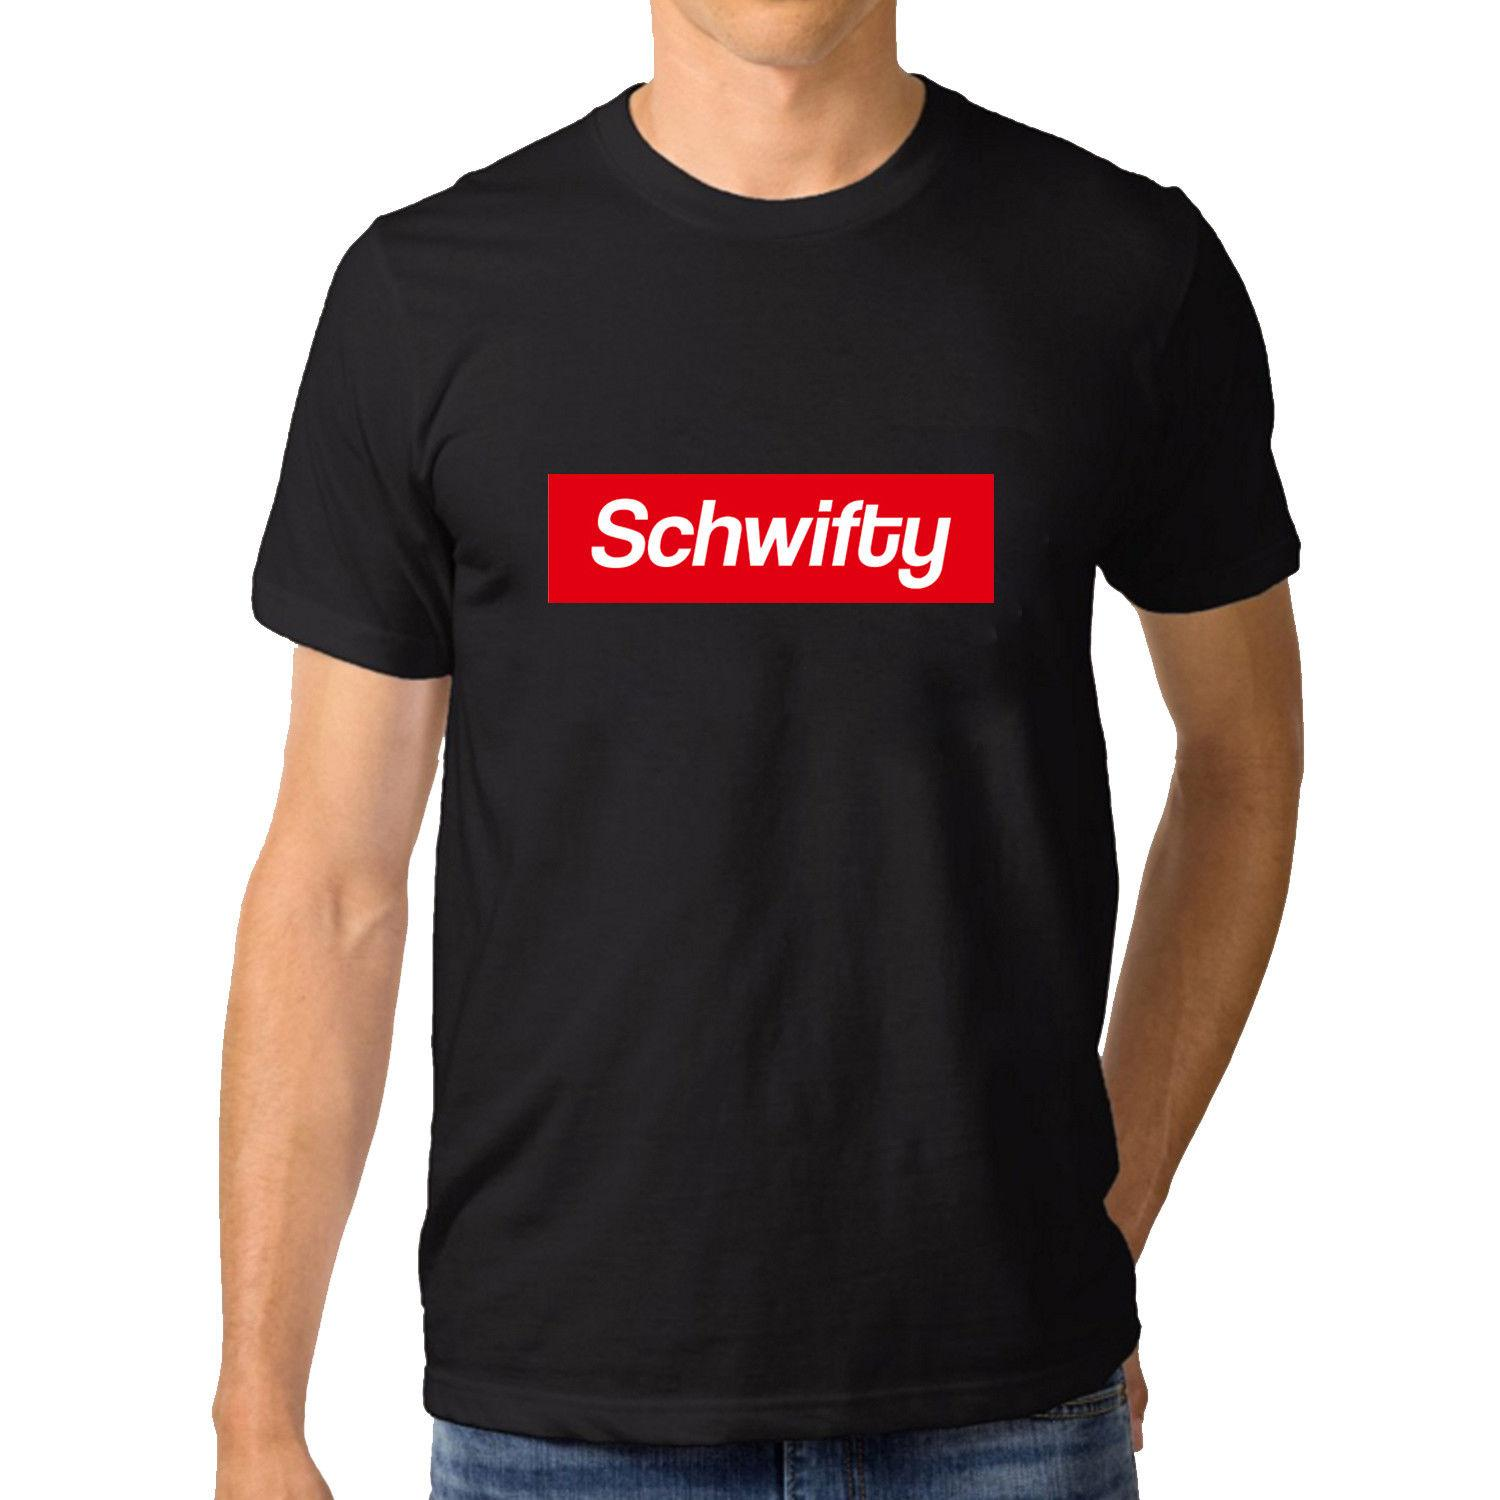 3bce197eb03 2017 Funny Rick And Morty Schwifty Men s T-Shirt Tee Shirt Online ...